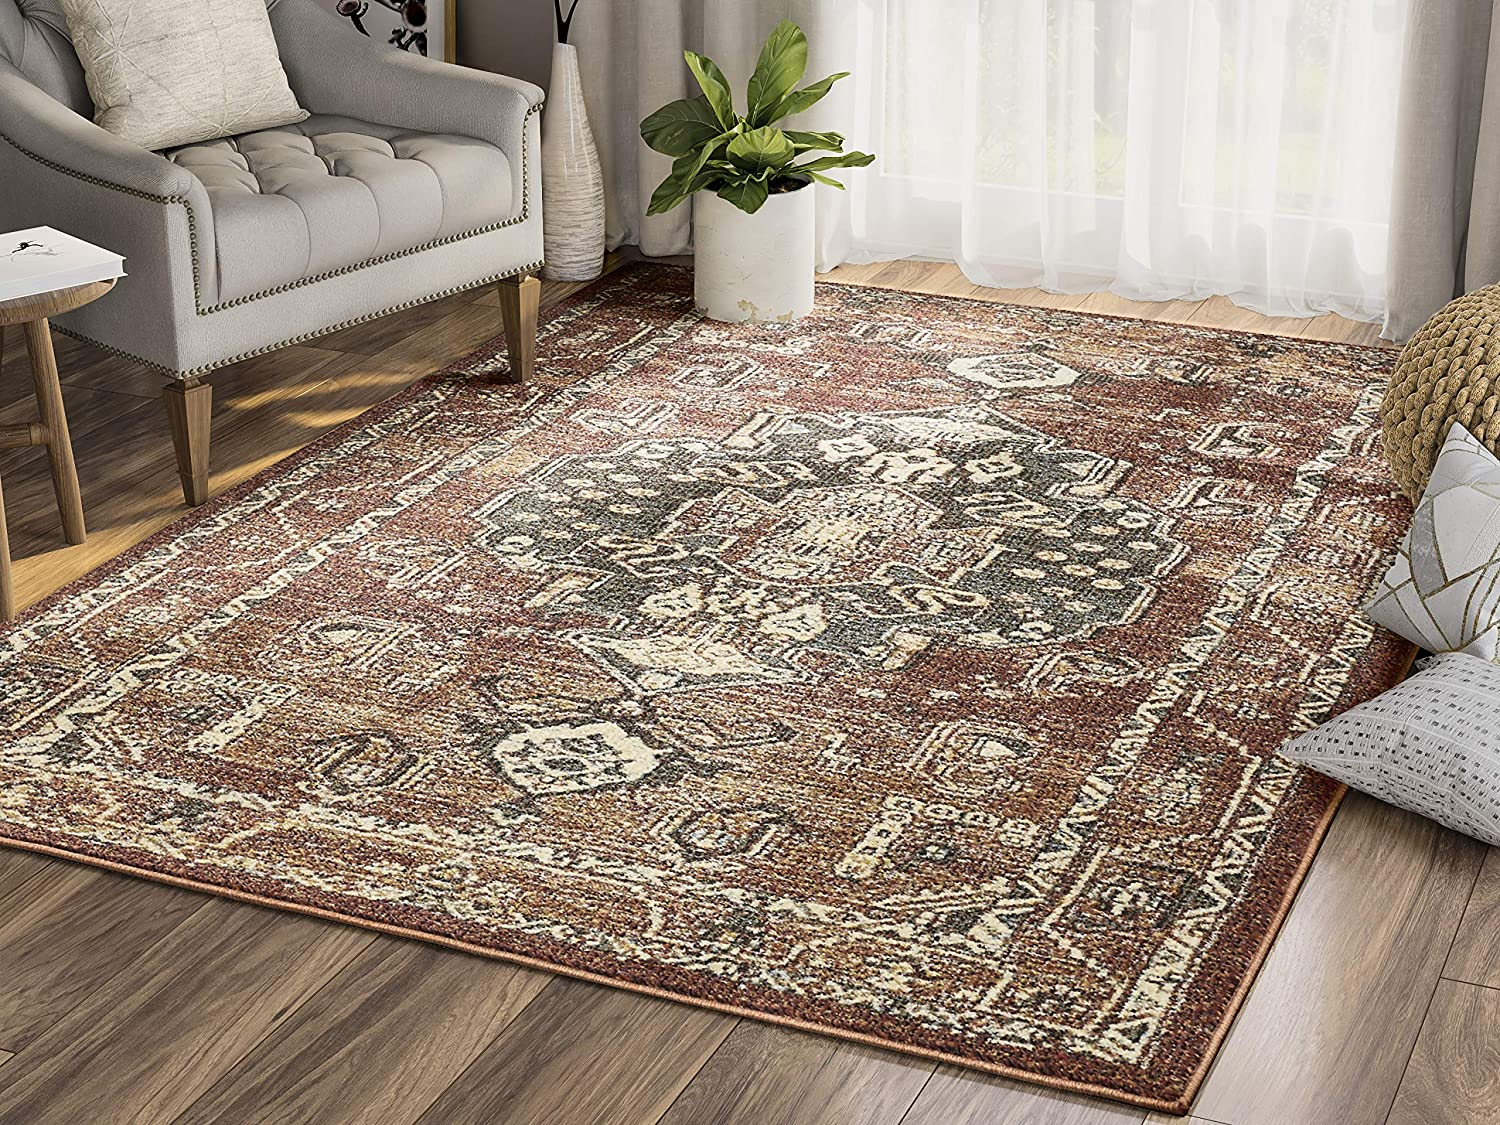 Abani Rugs Orange Green Beige Distressed Medallion Area Rug Southwestern Vintage Style Accent Mesa Collection Turkish Made Superior Comfort Construction Stain Shed Resistant 4 X 6 Feet Kitchen Dining Amazon Com